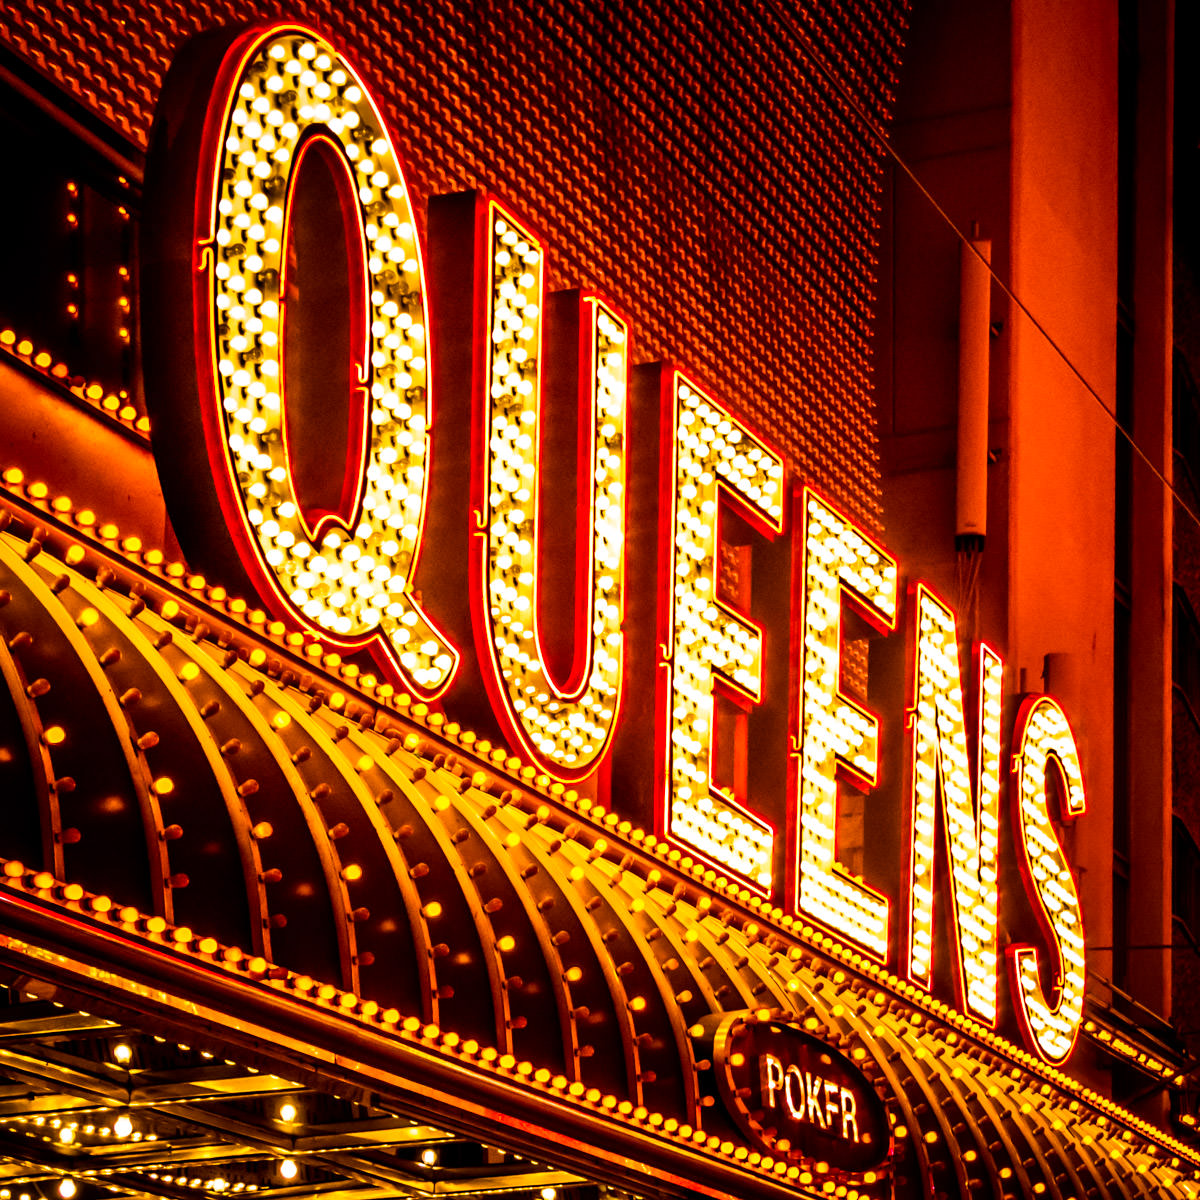 Detail of one of the signs for the Four Queens Hotel and Casino in Downtown Las Vegas.